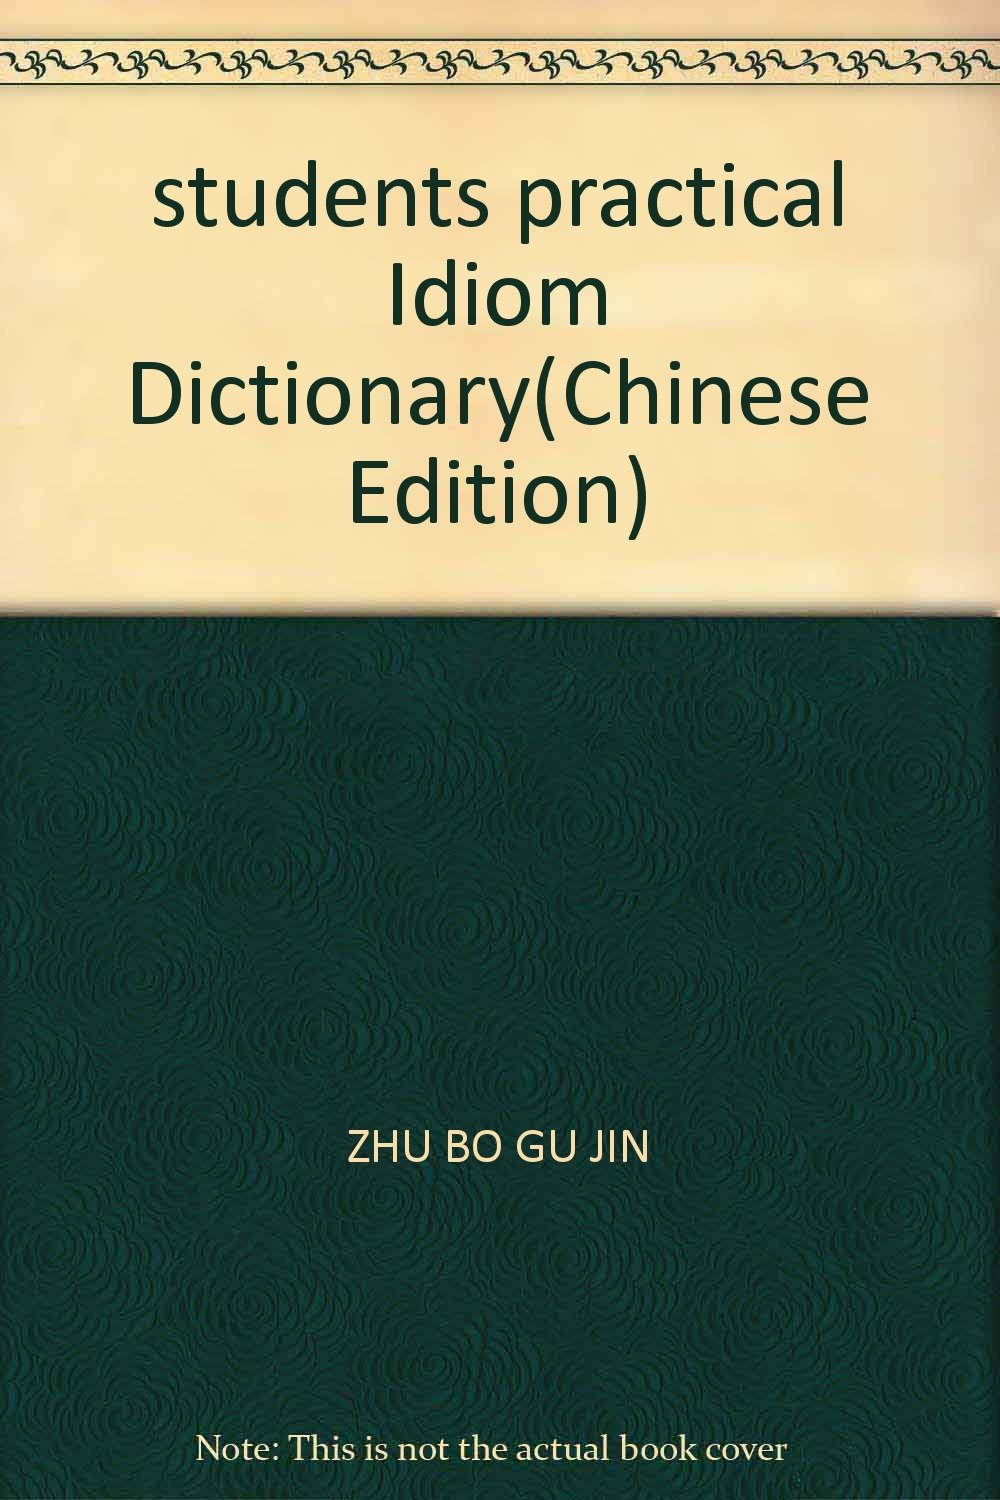 students practical Idiom Dictionary(Chinese Edition) ebook